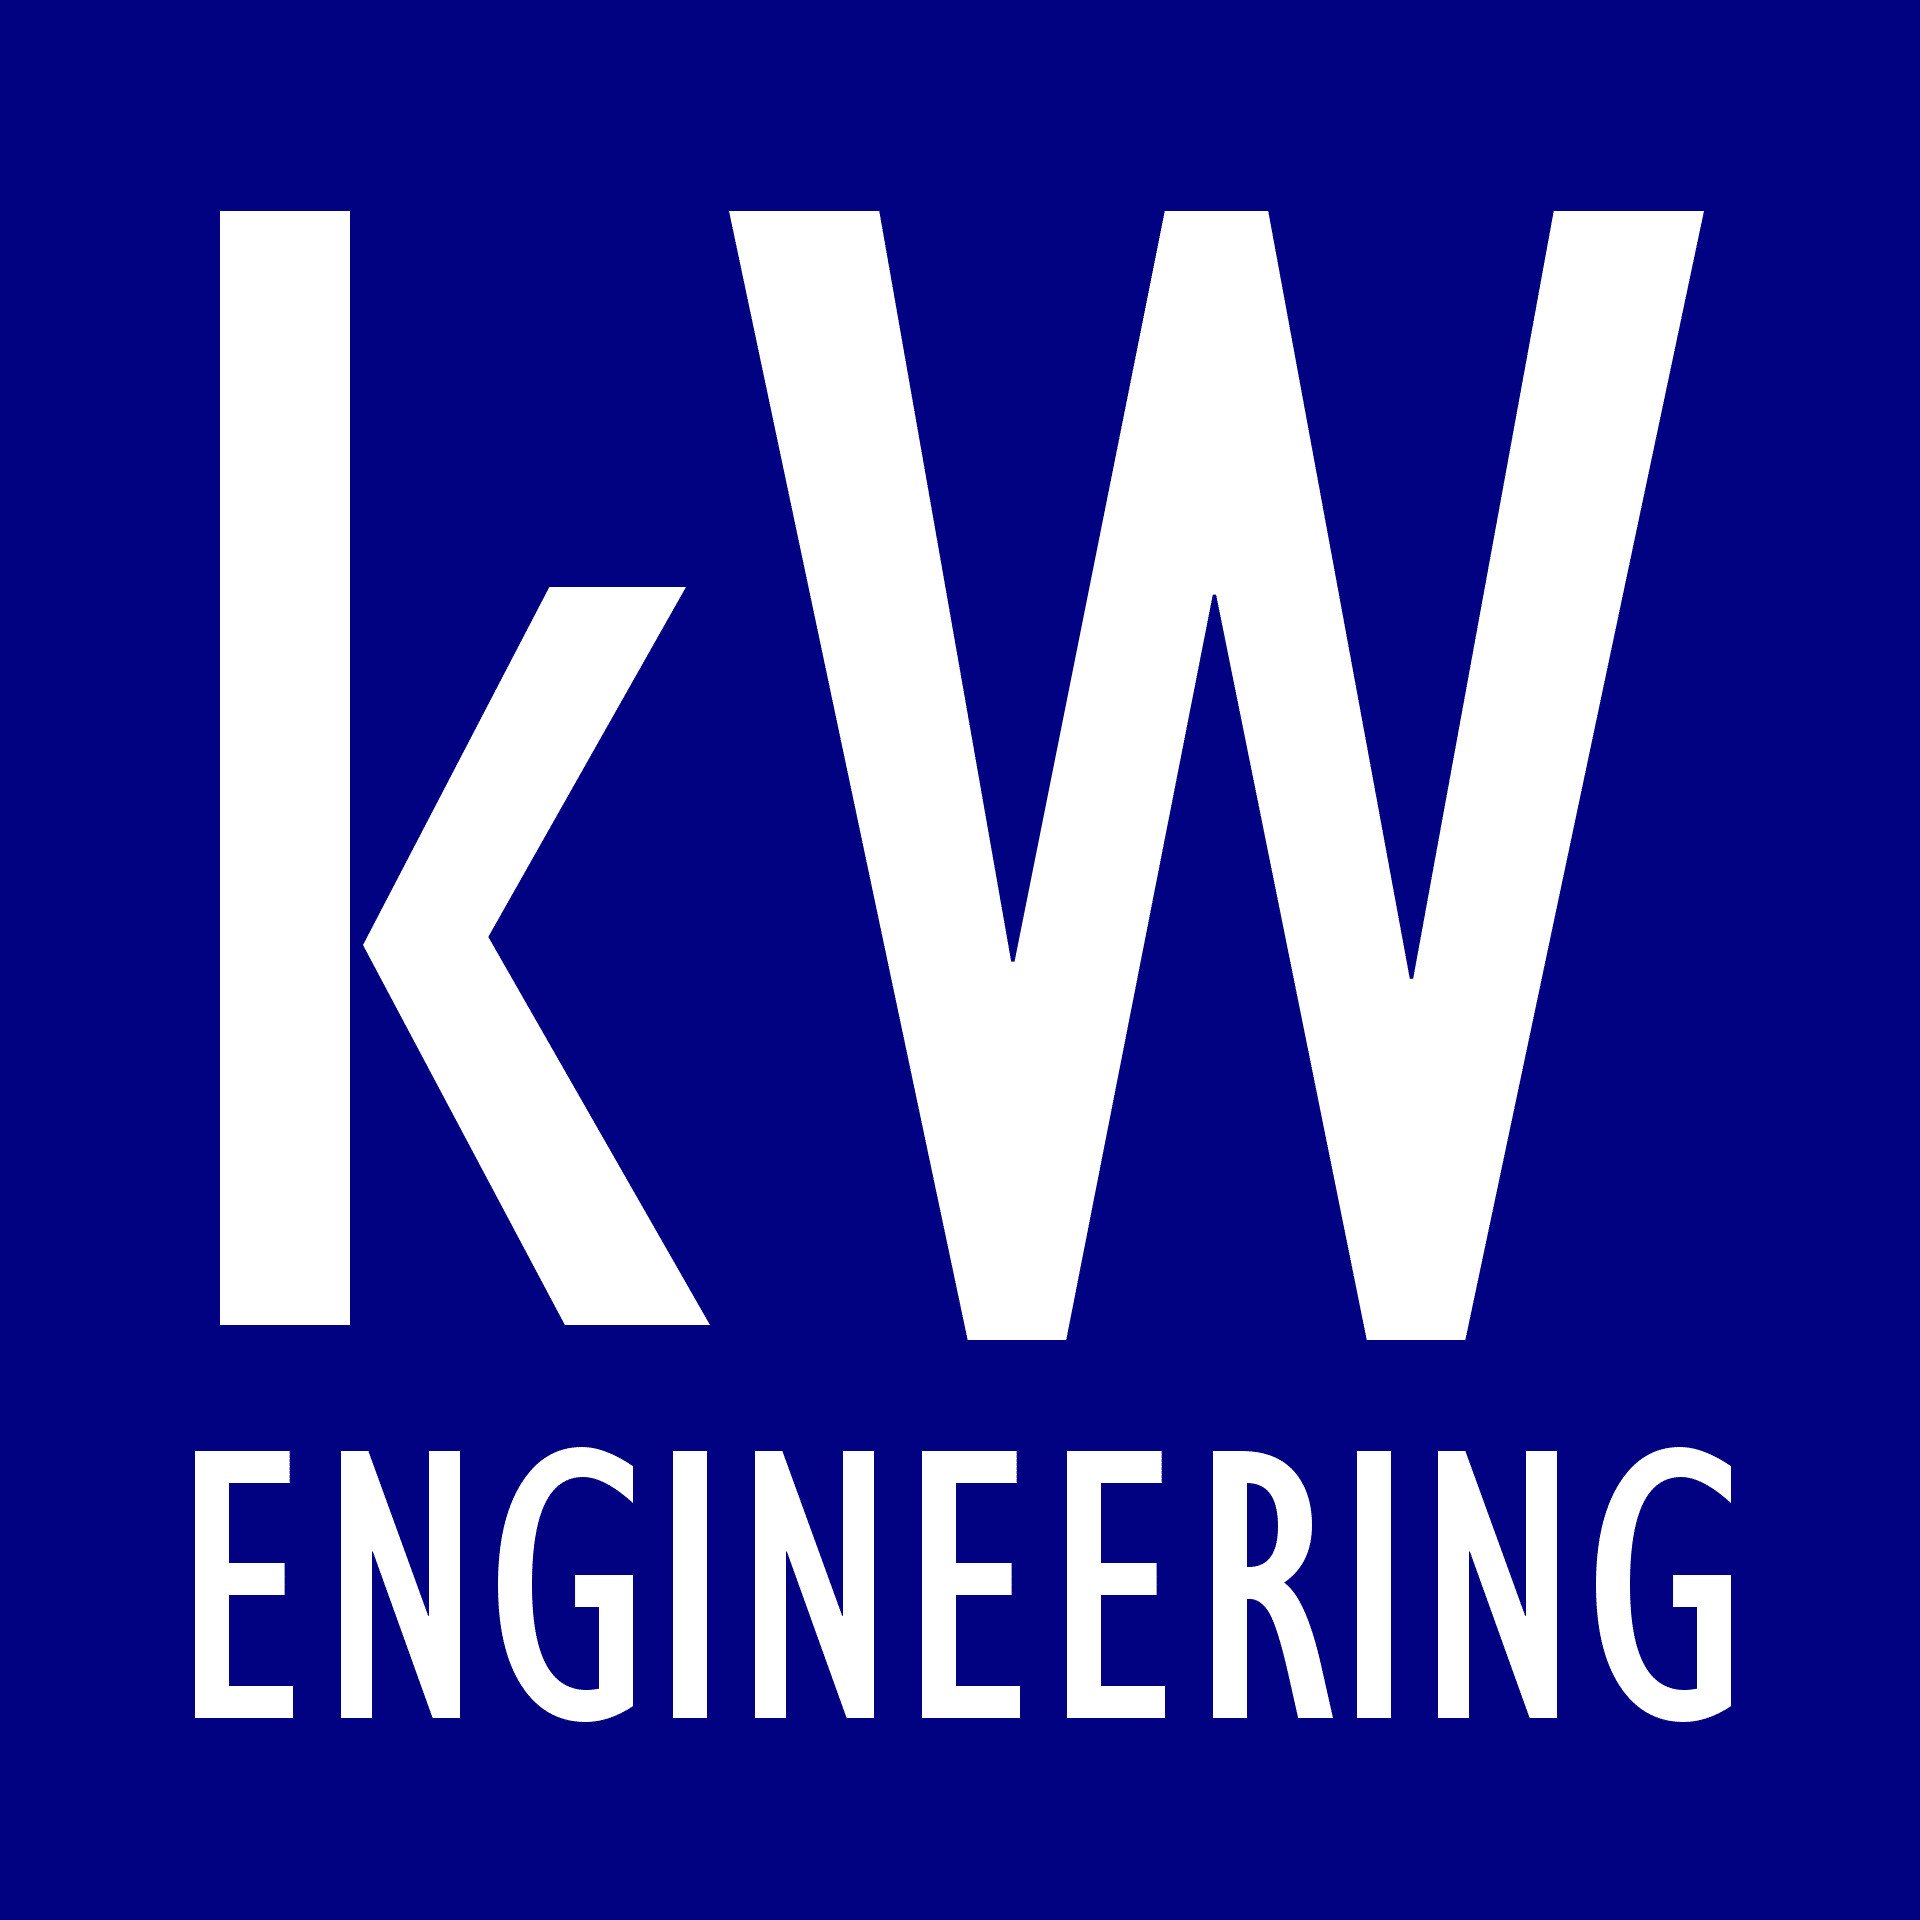 Kw Engineering Energy Efficiency And Renewables Consultants Electrical Design Consultancy Commercial Industrial California Utah Illionois New York